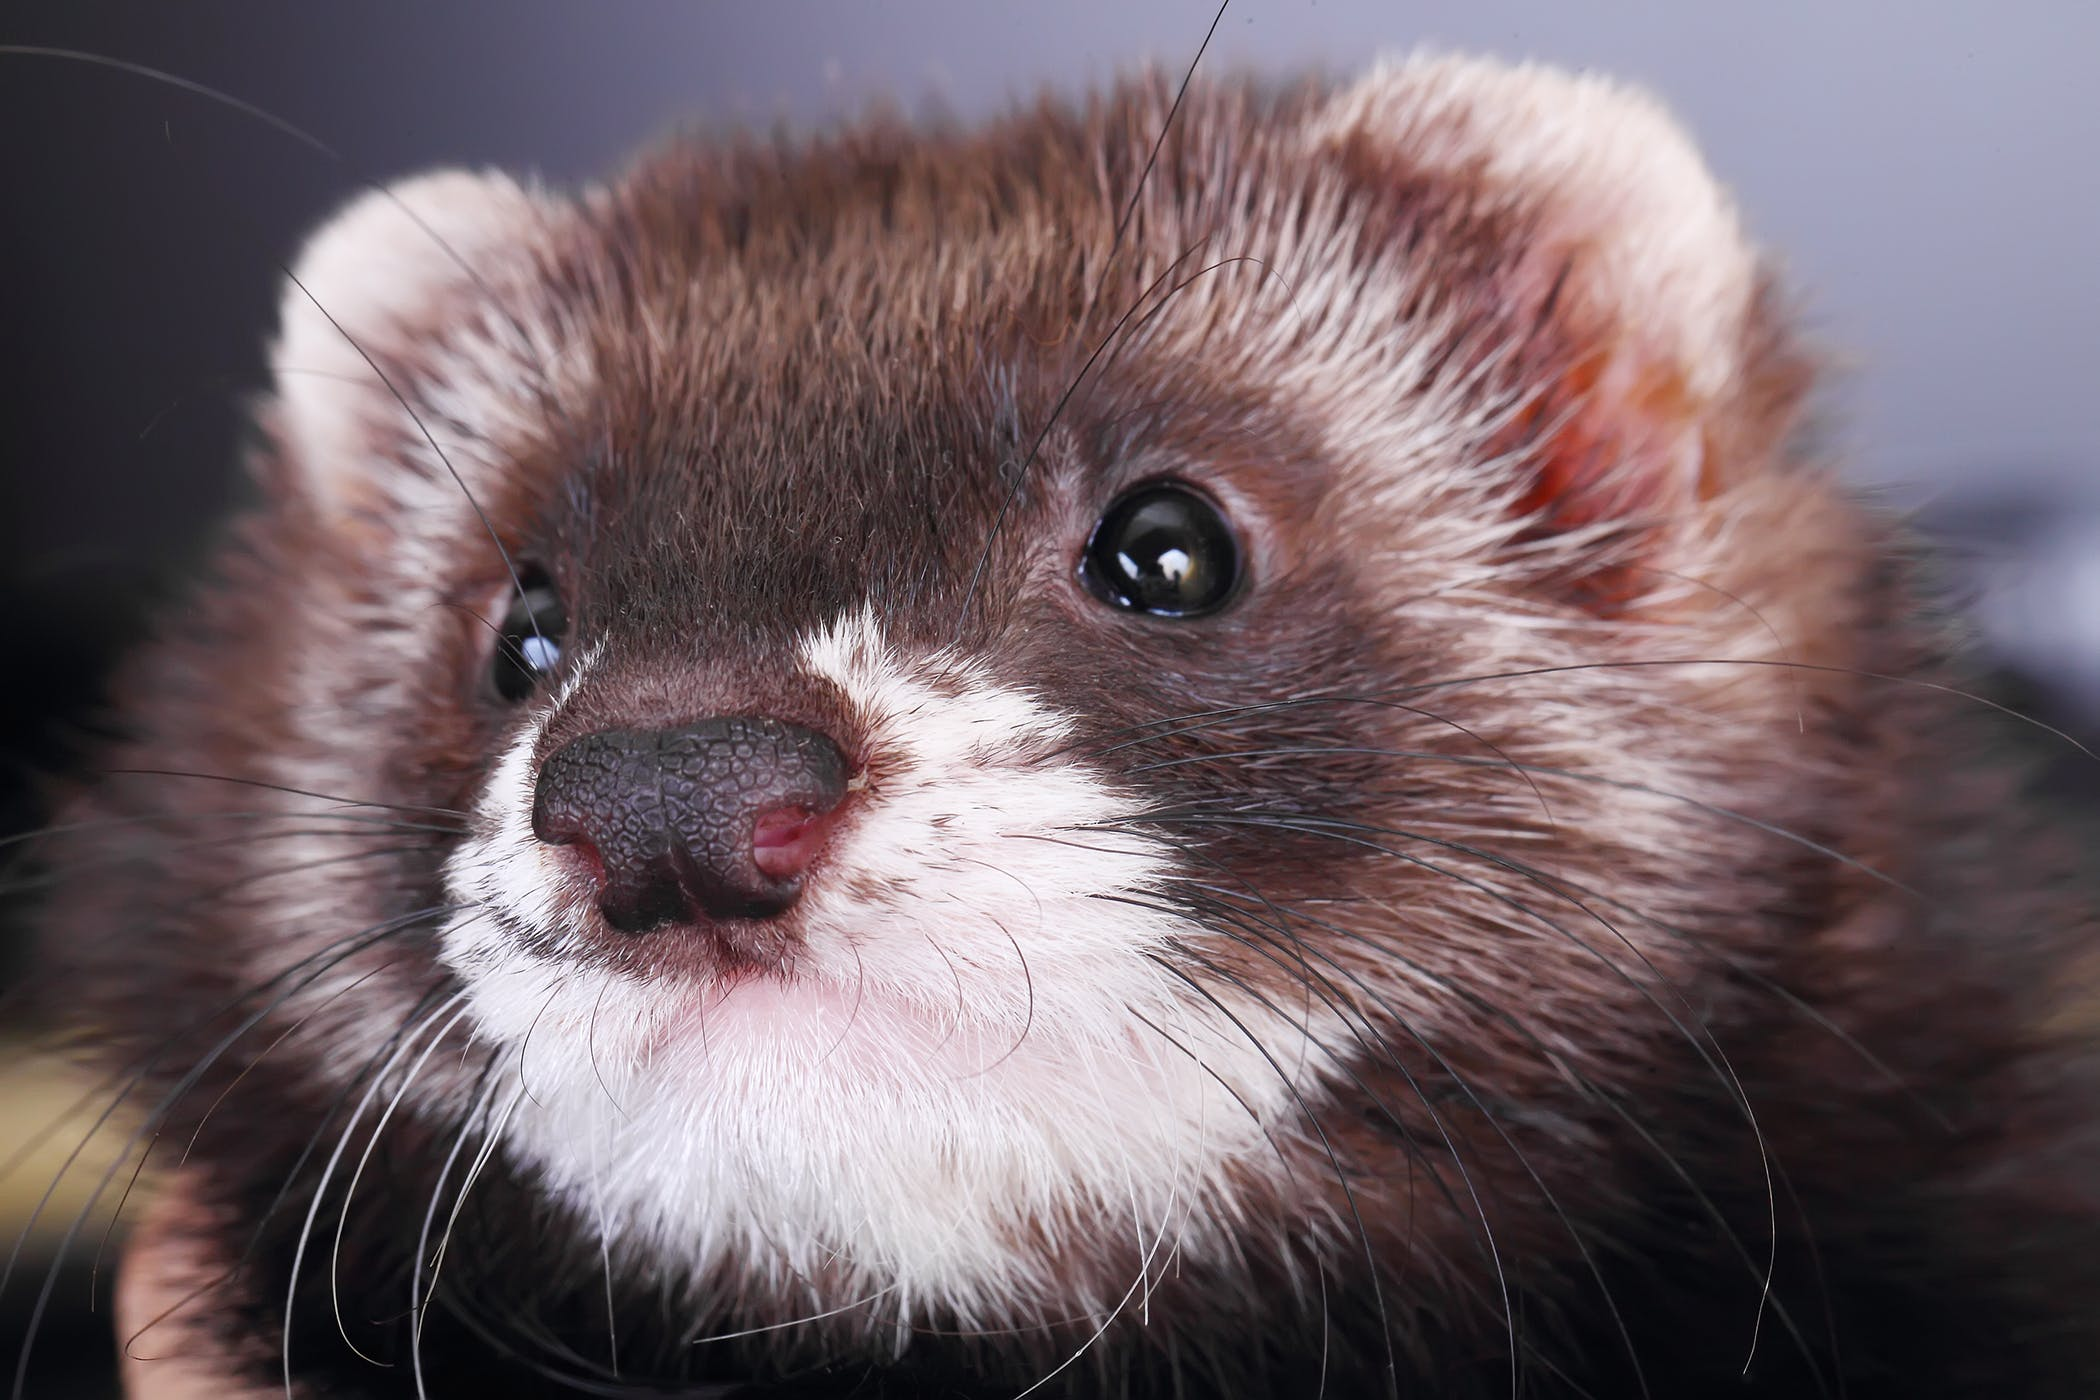 Human Influenza Virus in Ferrets